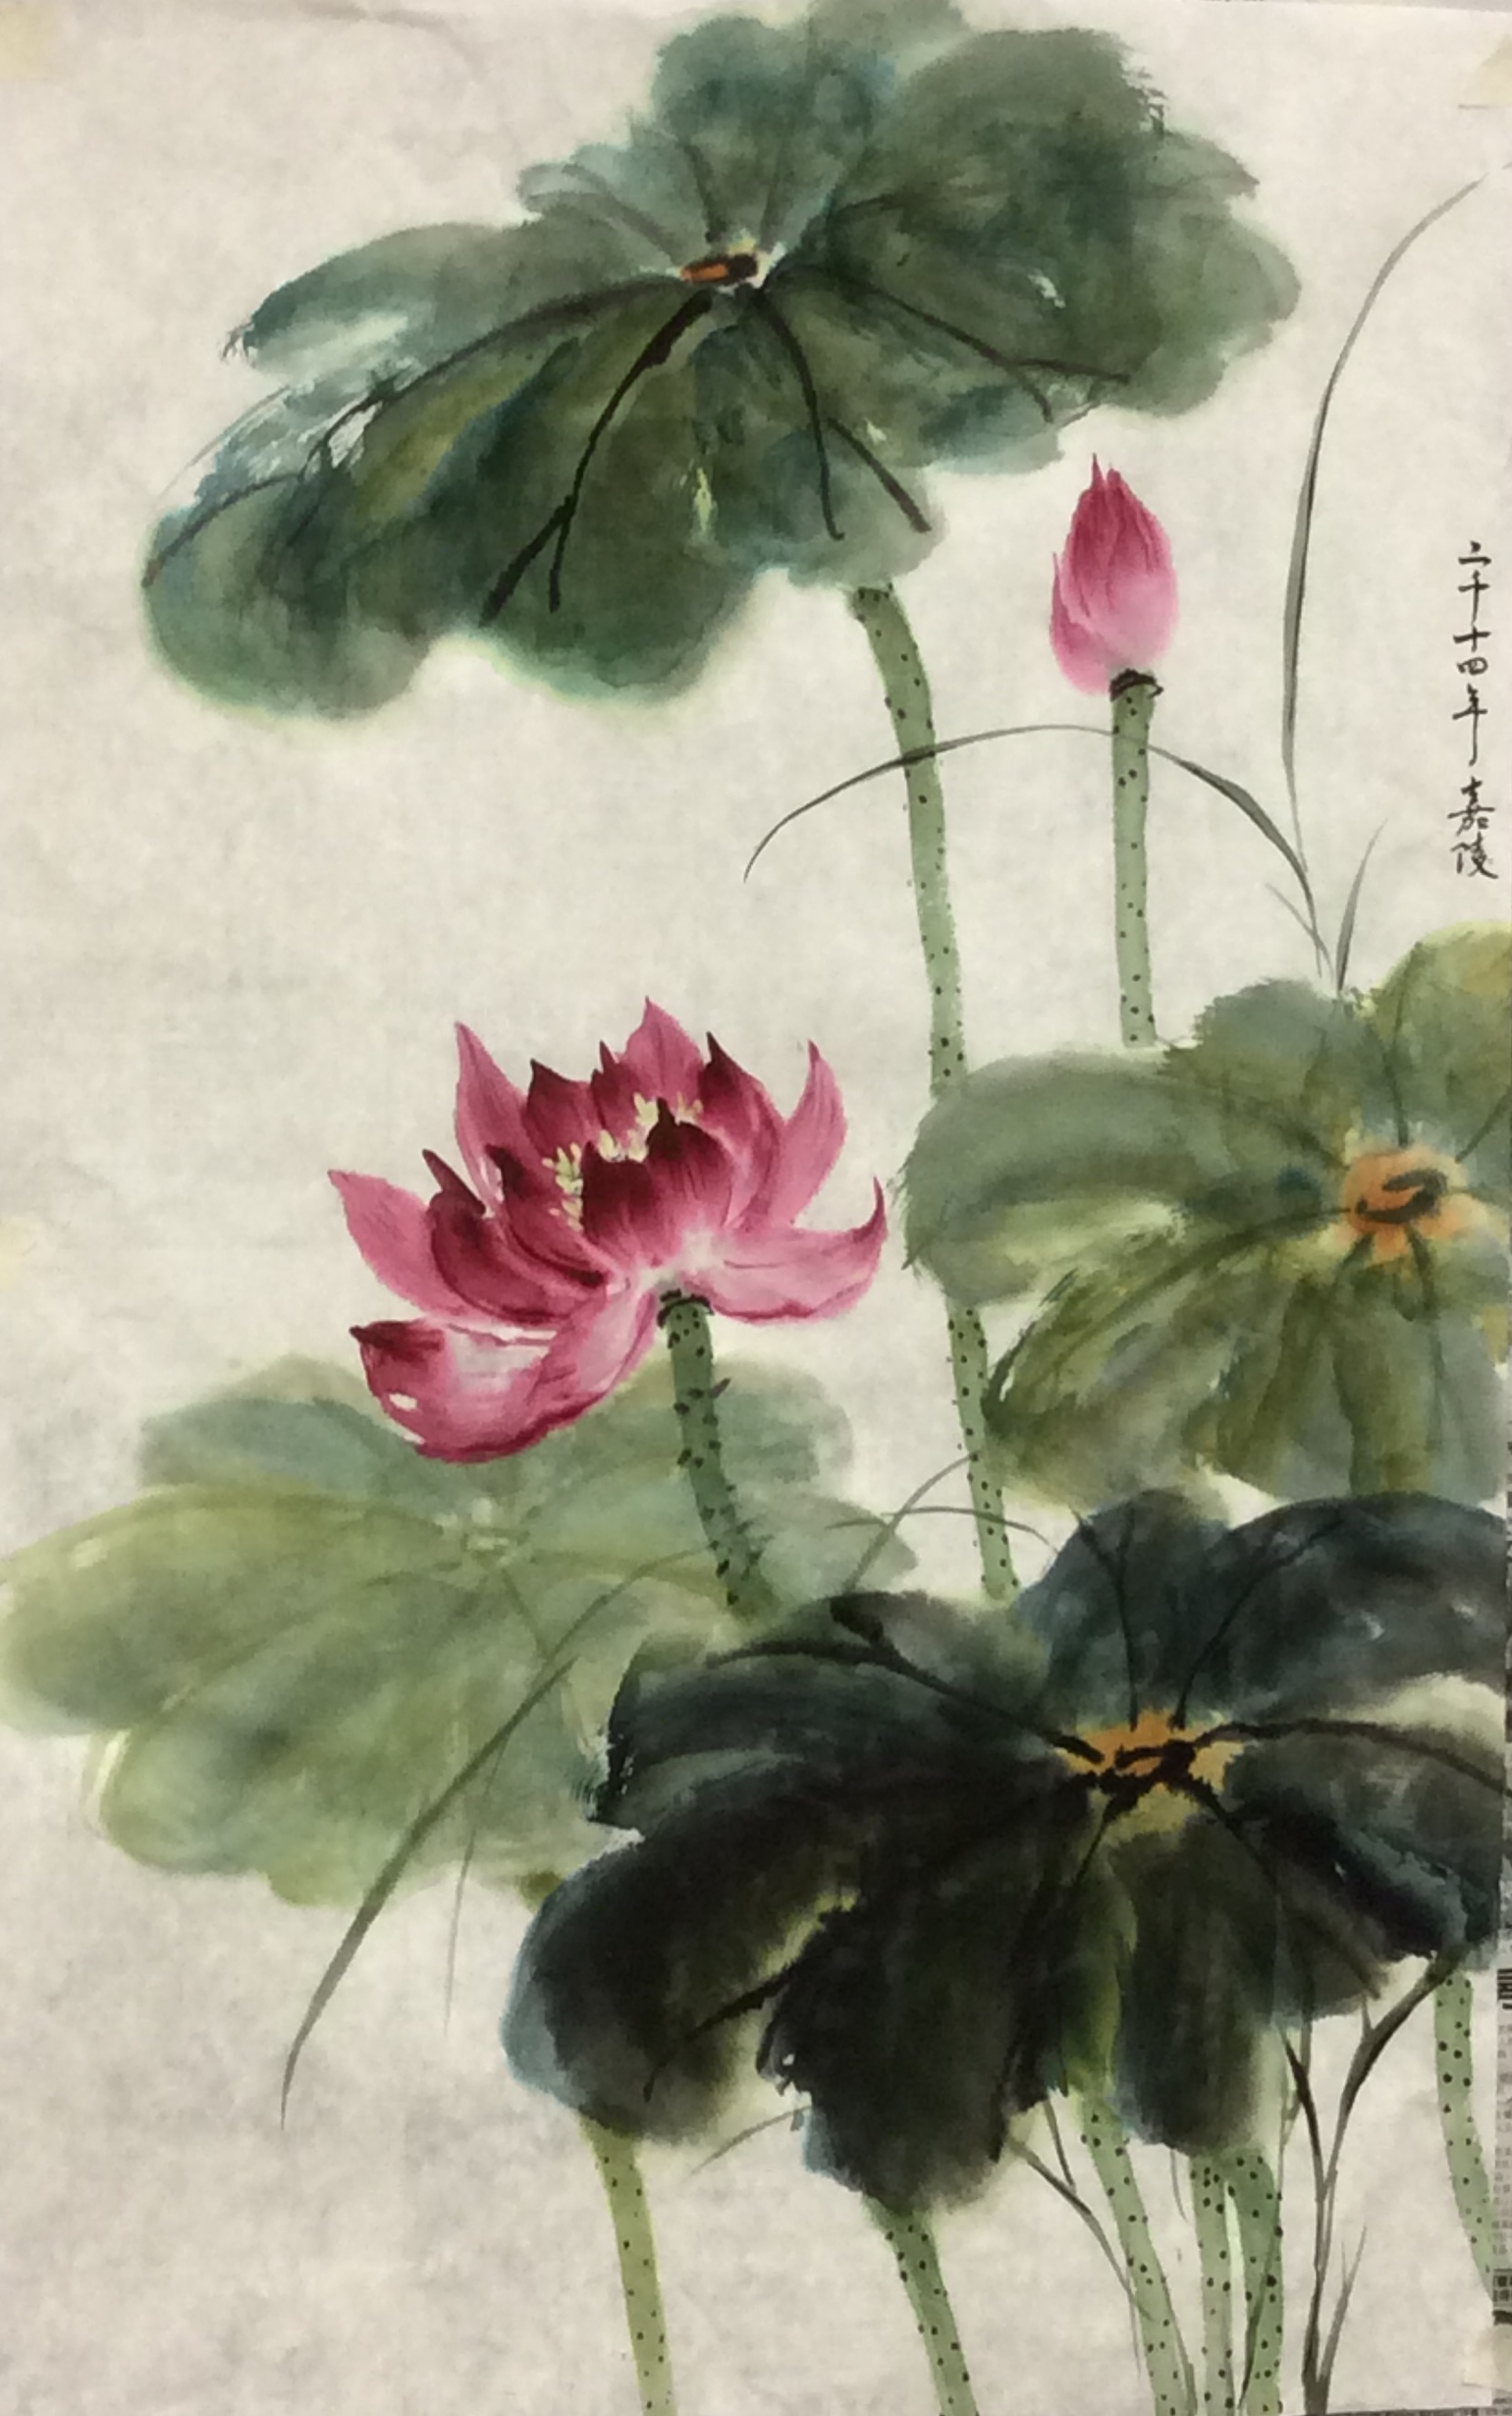 Demo Painting 2014 谭嘉陵 Chinese Traditional Brush Painting